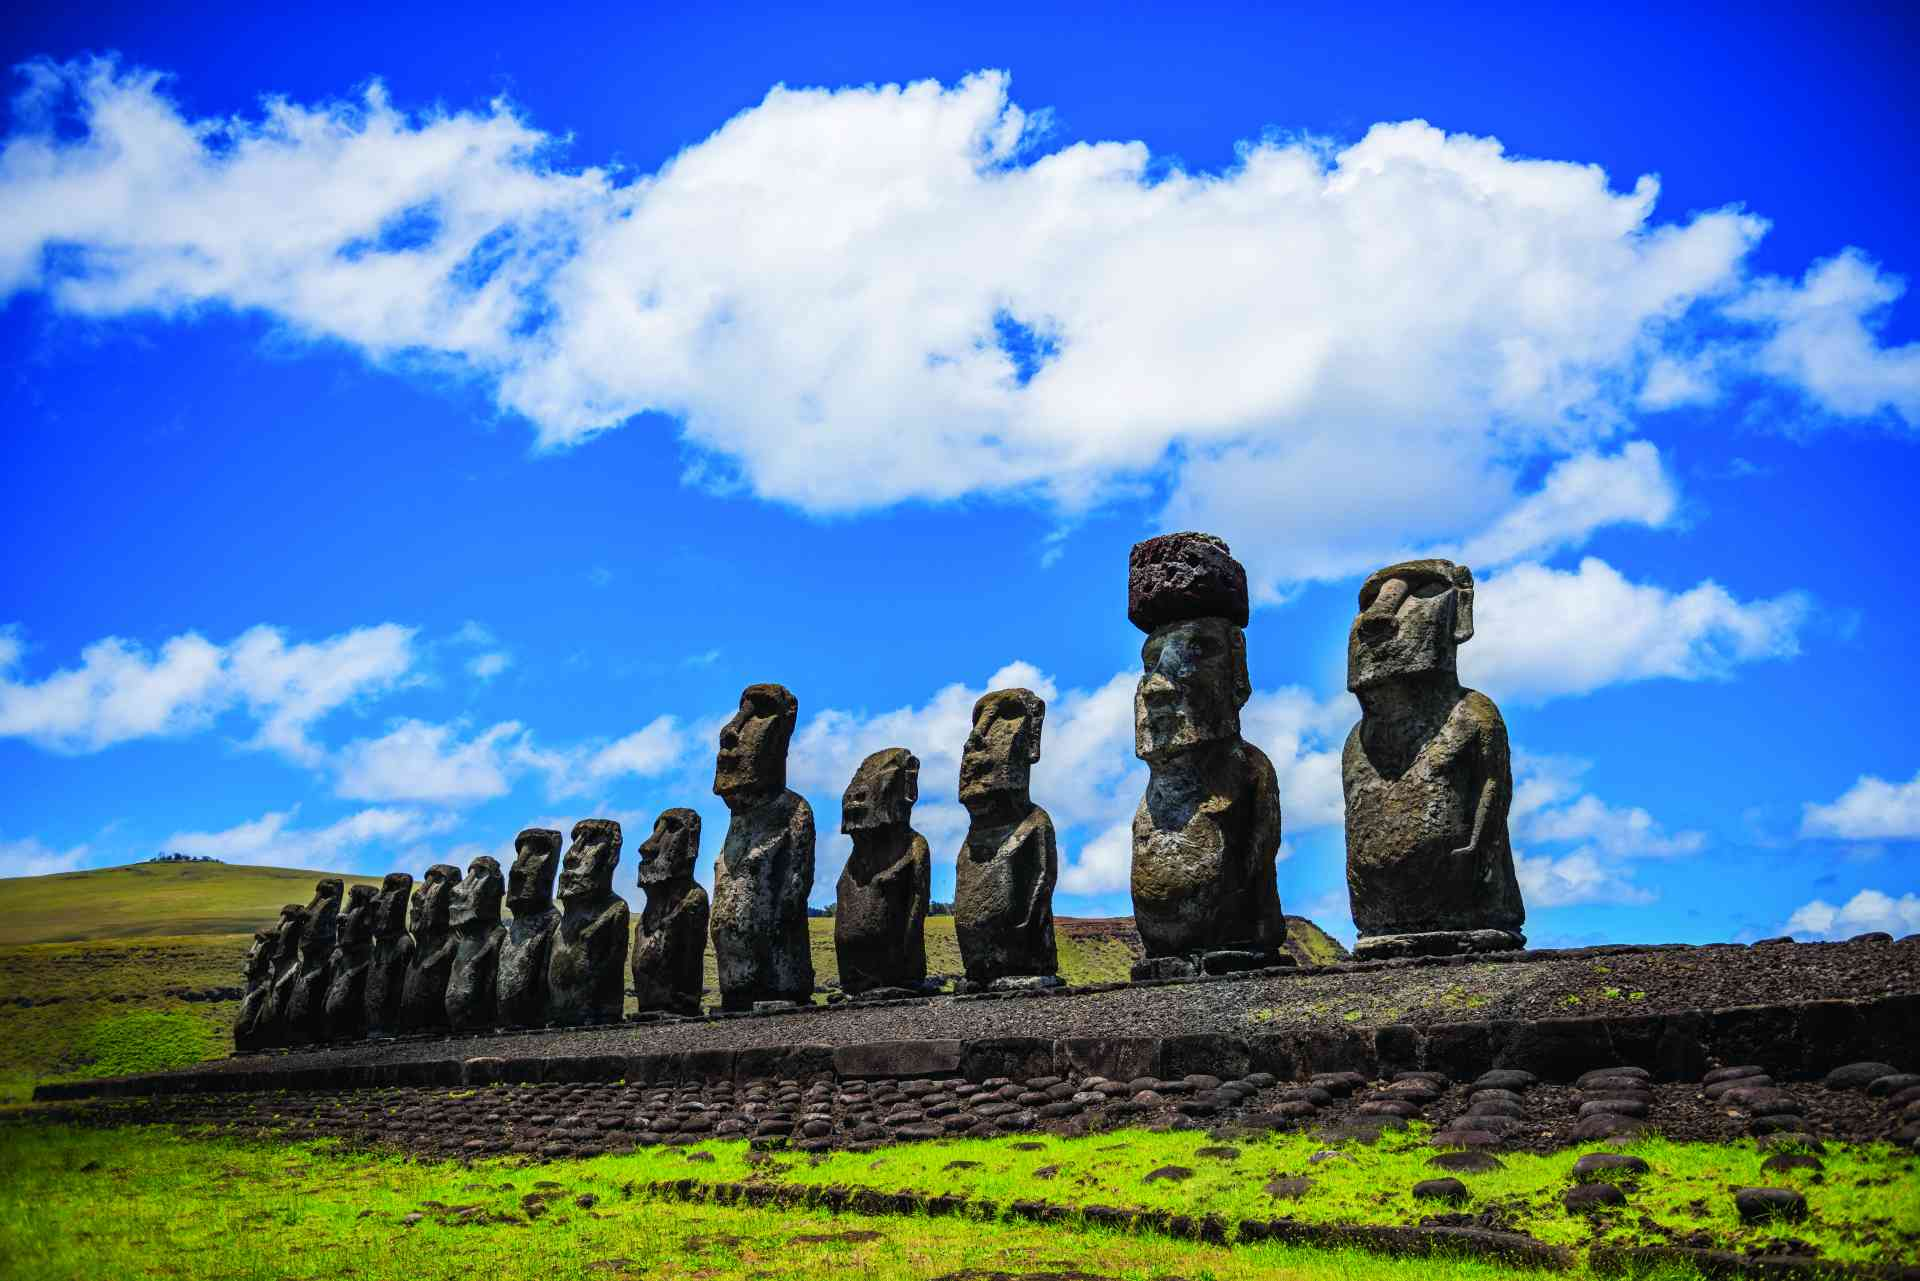 Ahu Tongariki, Easter Island, Chile by voltamax from Pixabay